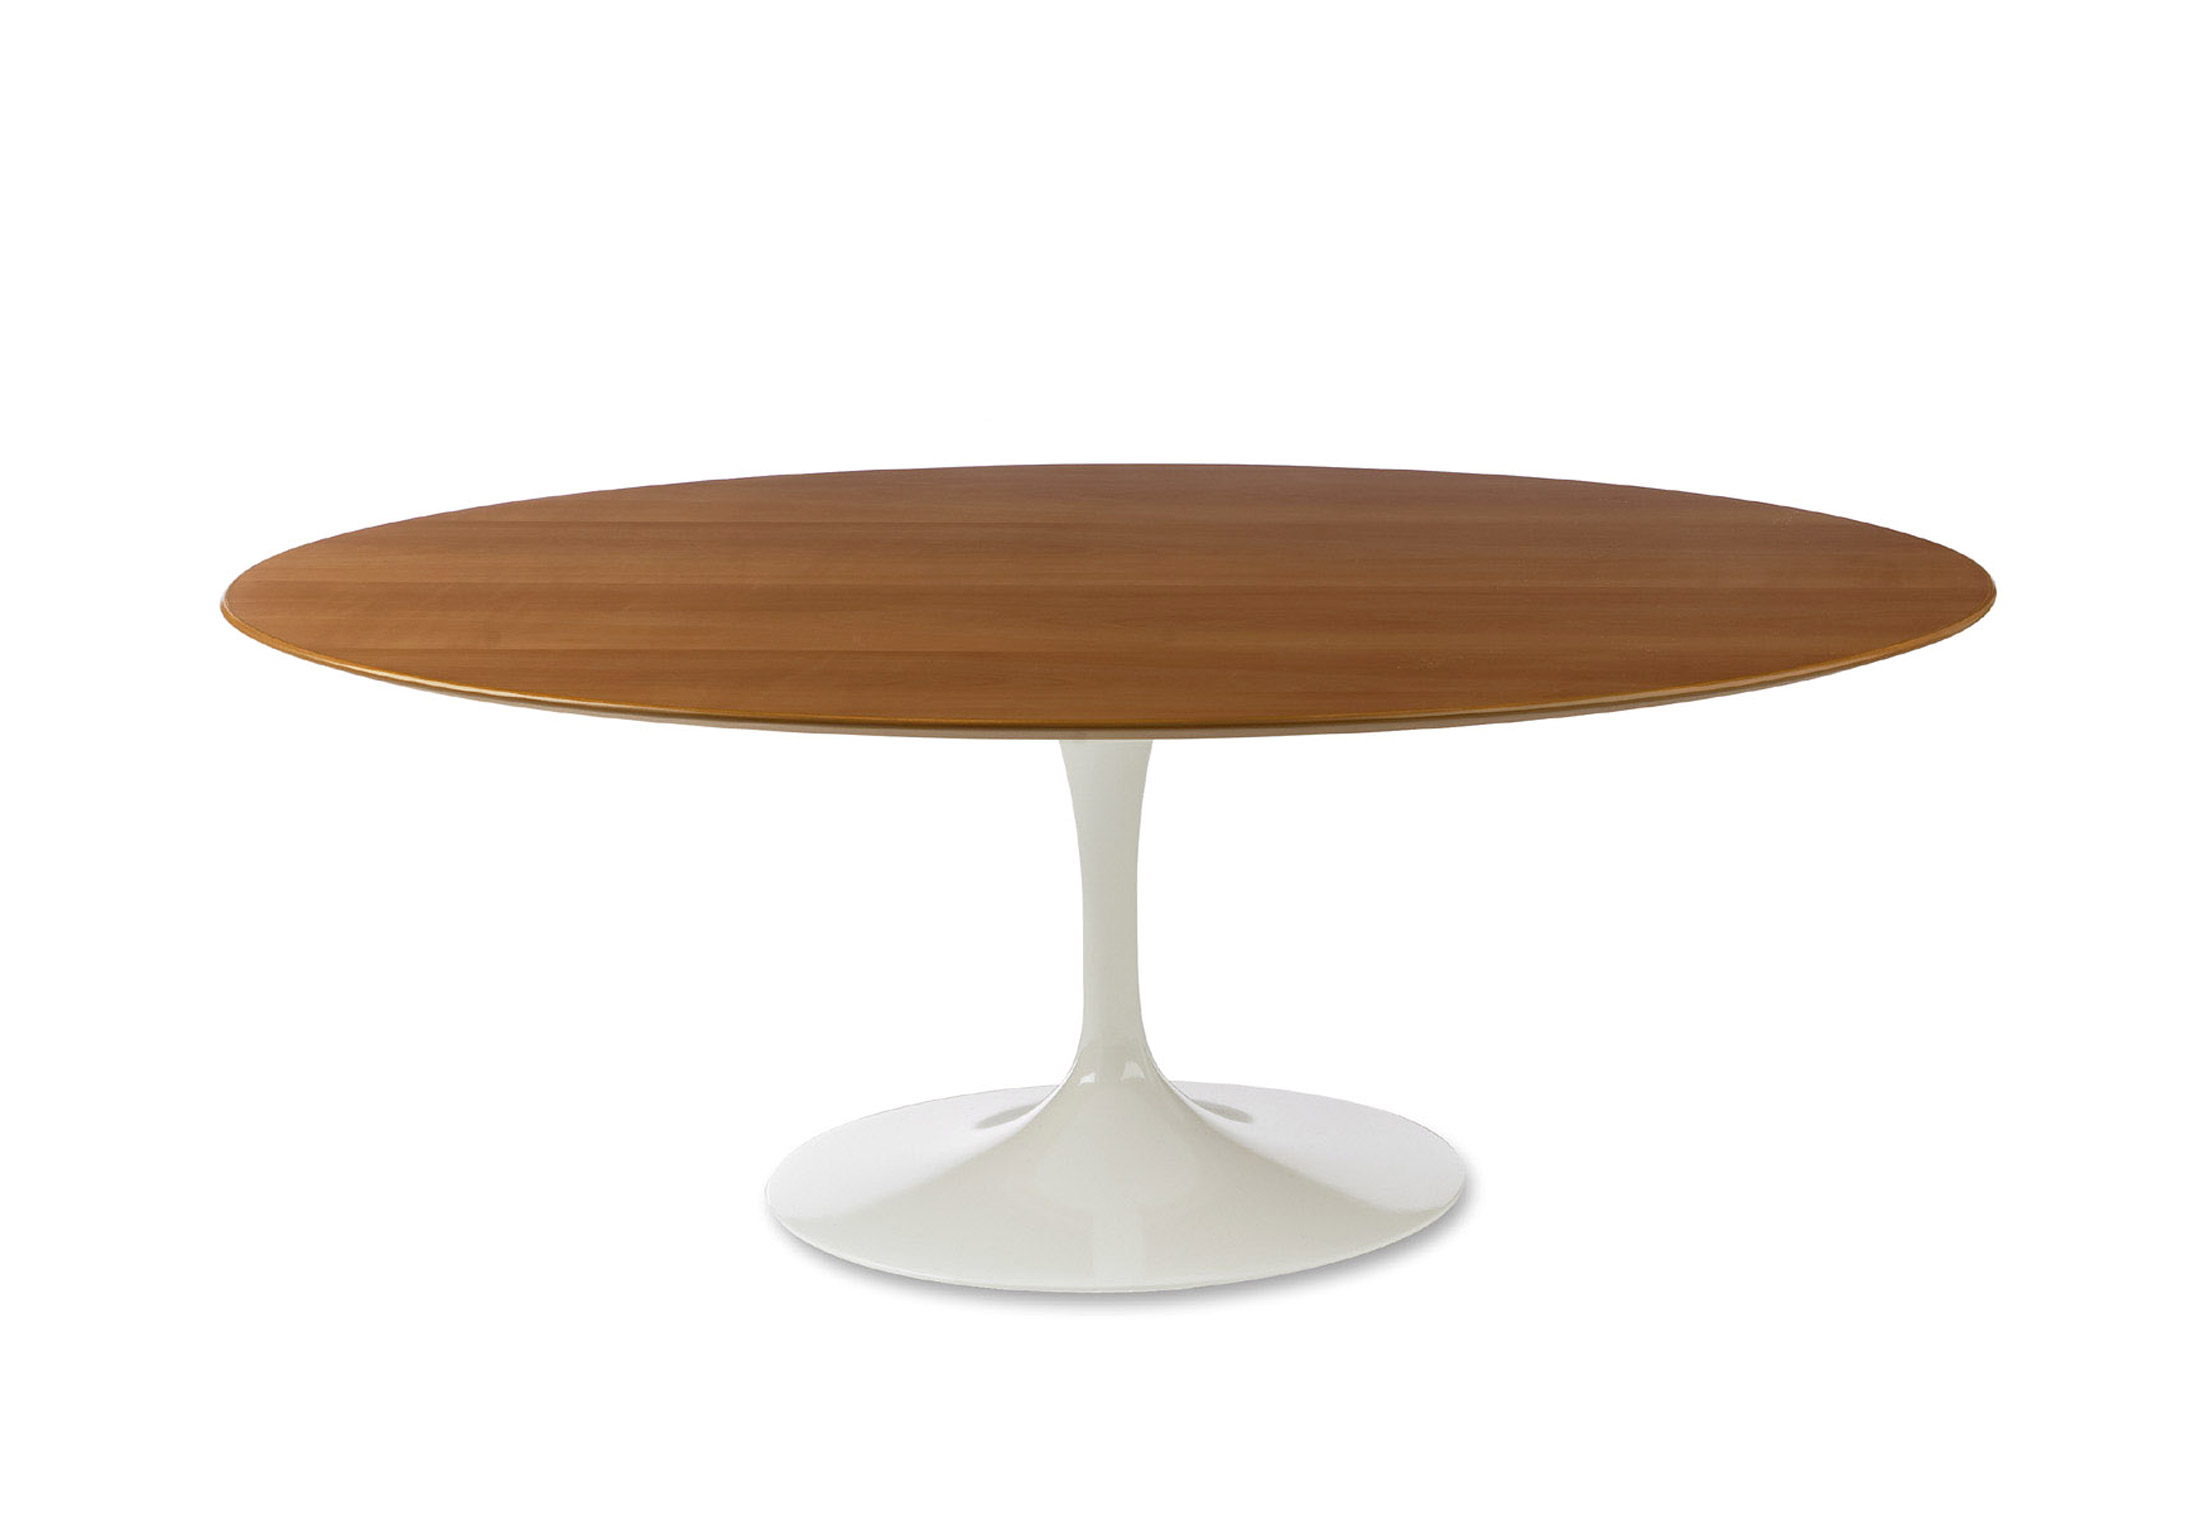 saarinen tulip dining table saarinen tulip dining table - Saarinen Tulip Table